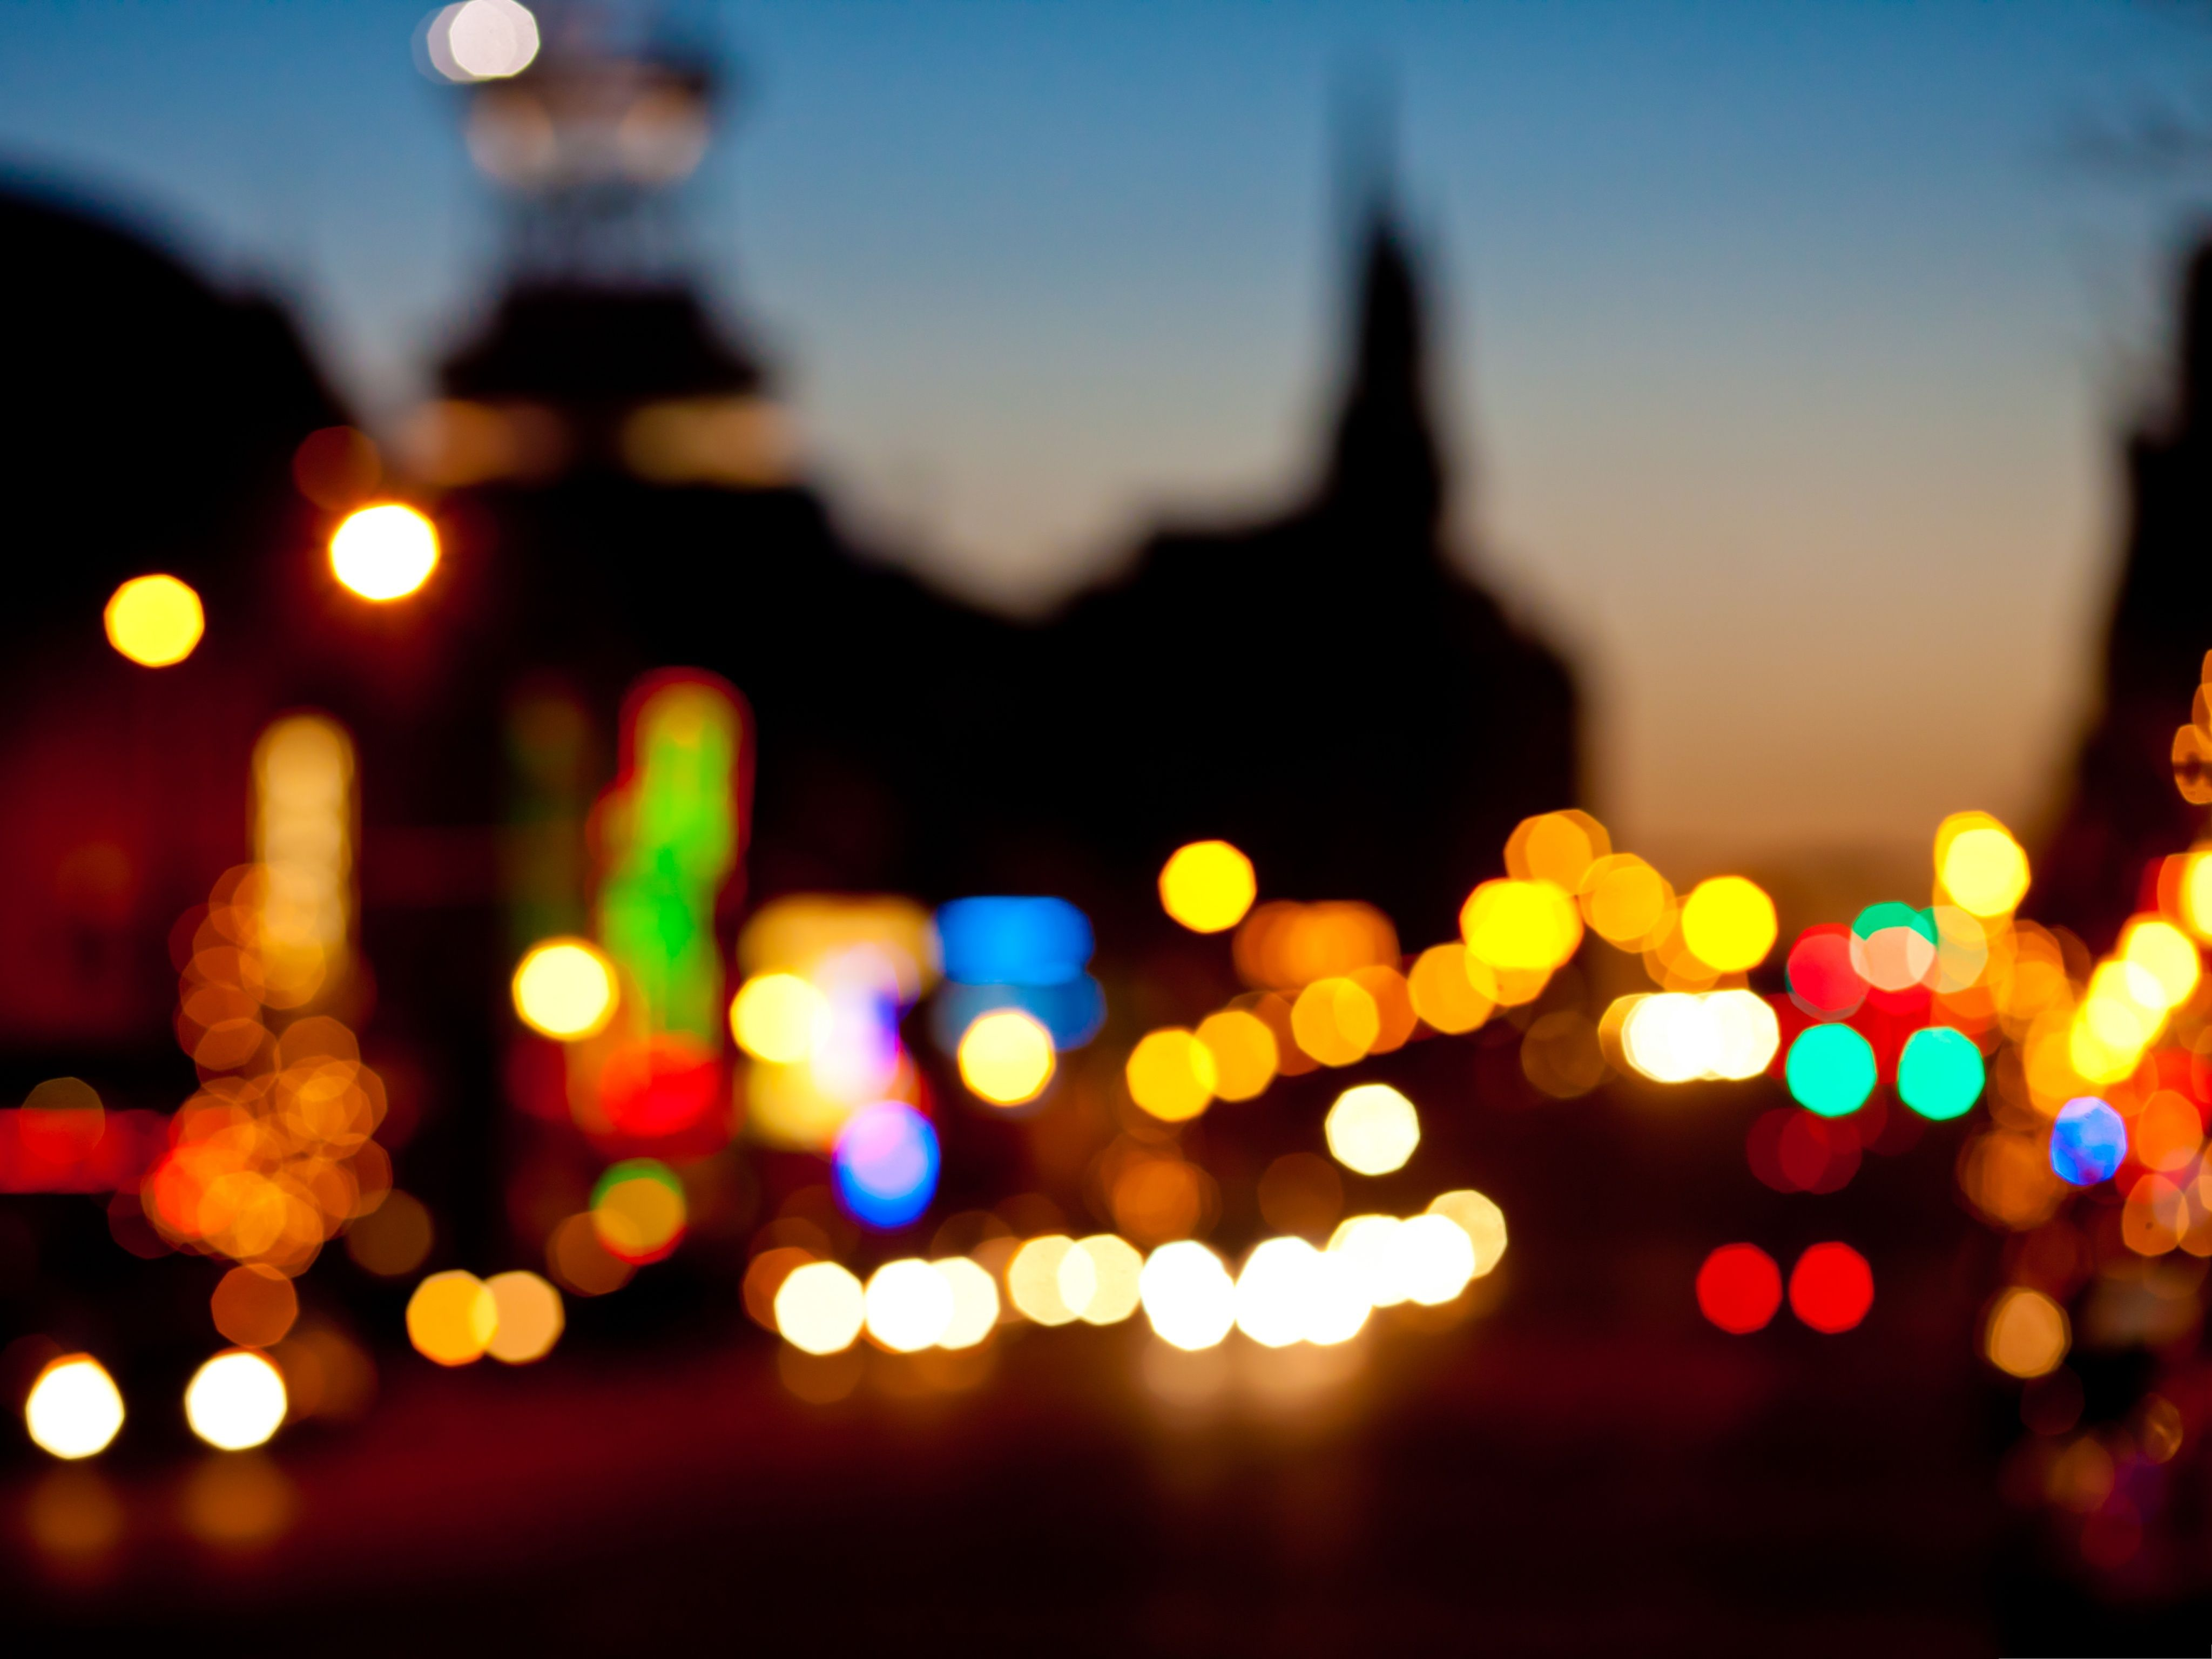 Wallpapers And Backgrounds Night Car Lights Bokeh Effect